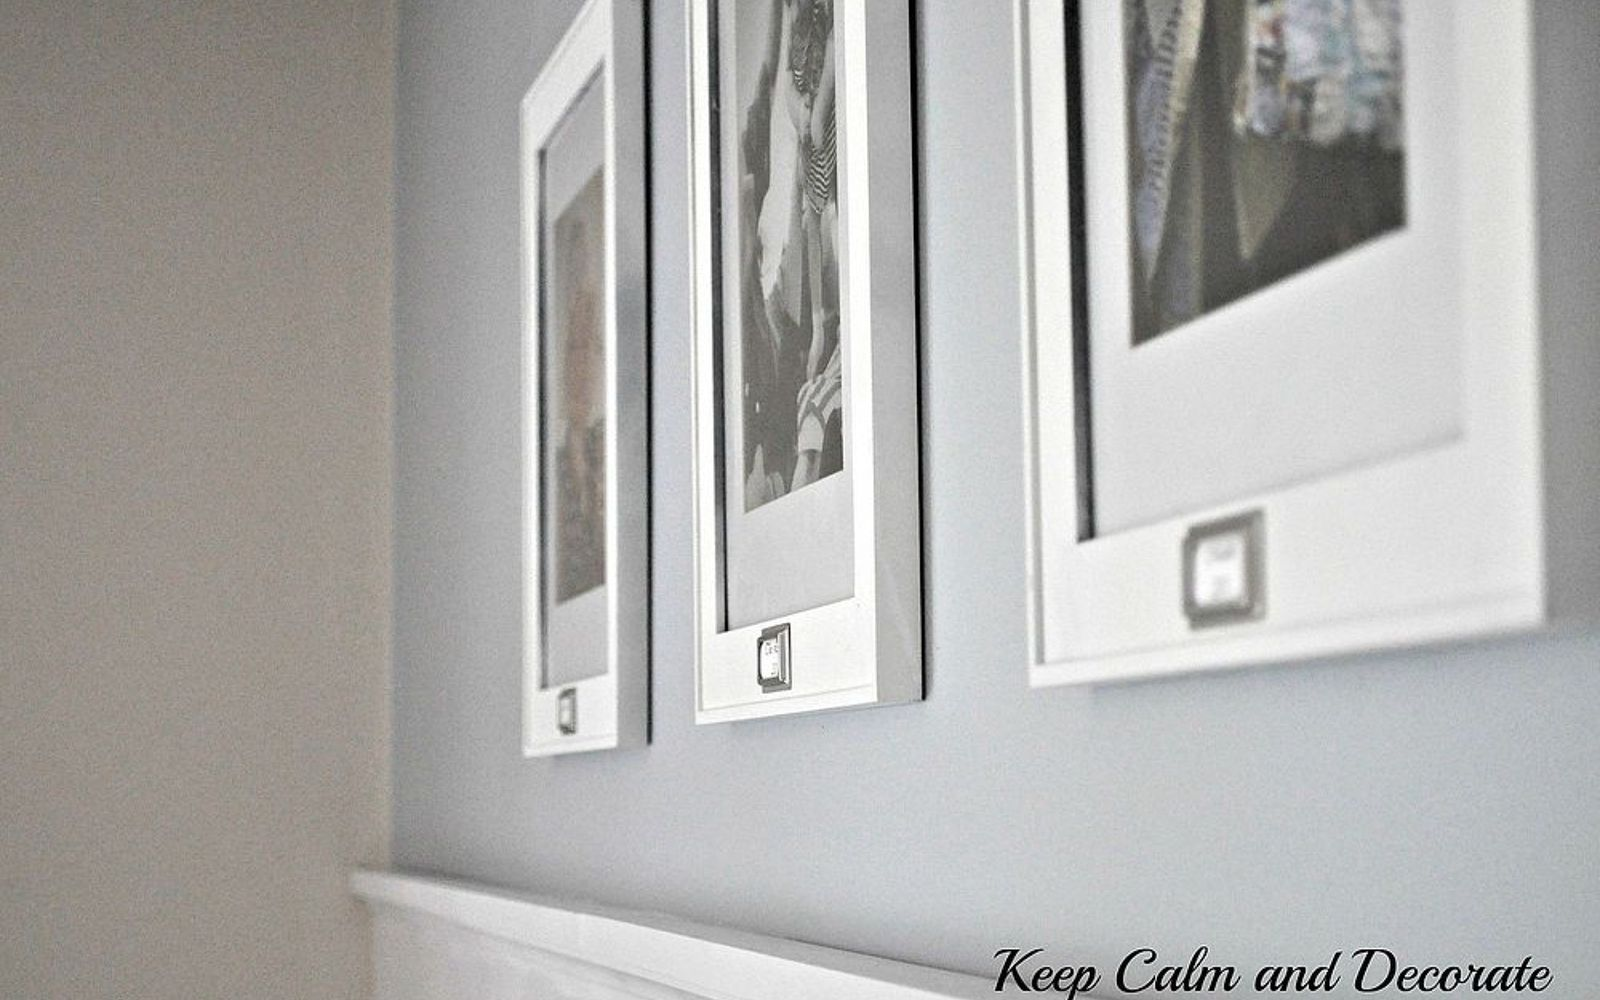 s 14 hidden home decor gems you can find in any dollar store, home decor, repurposing upcycling, Plain picture frames make designer galleries